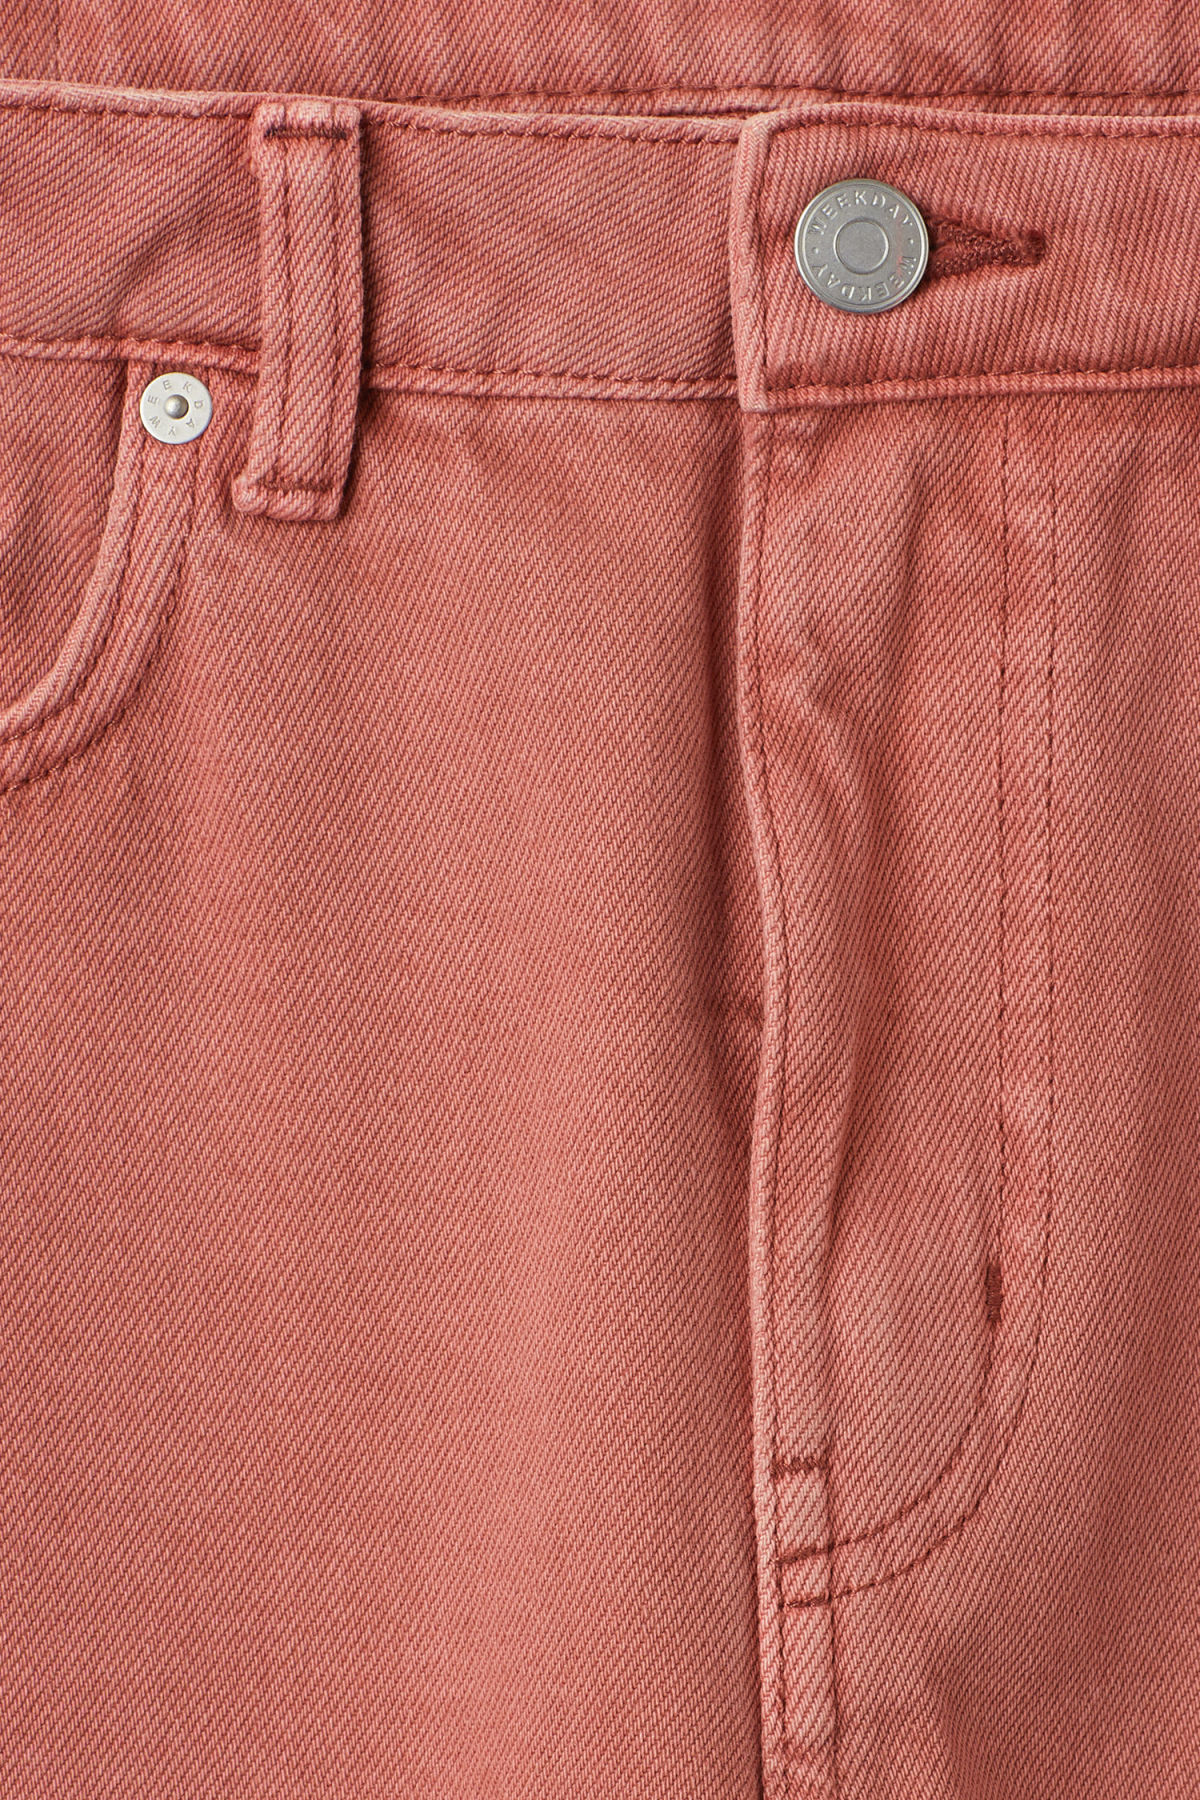 Detailed image of Weekday voyage rose jeans in orange